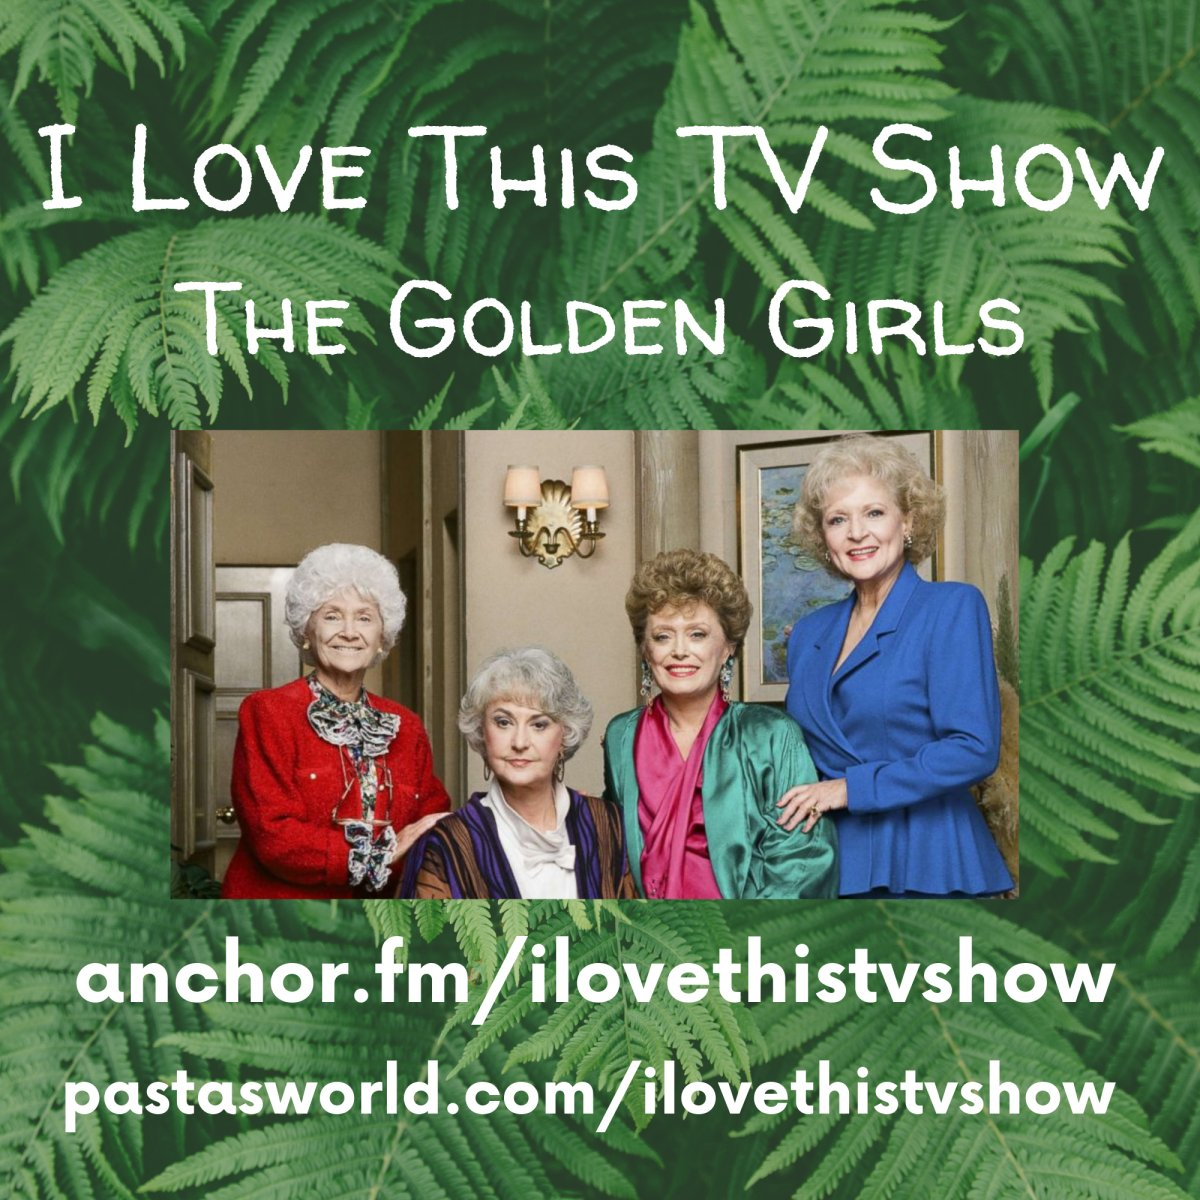 I Love This TV Show: The Golden Girls S2Ep12 - The Sisters  #podcast  #thegoldengirls #goldengirls